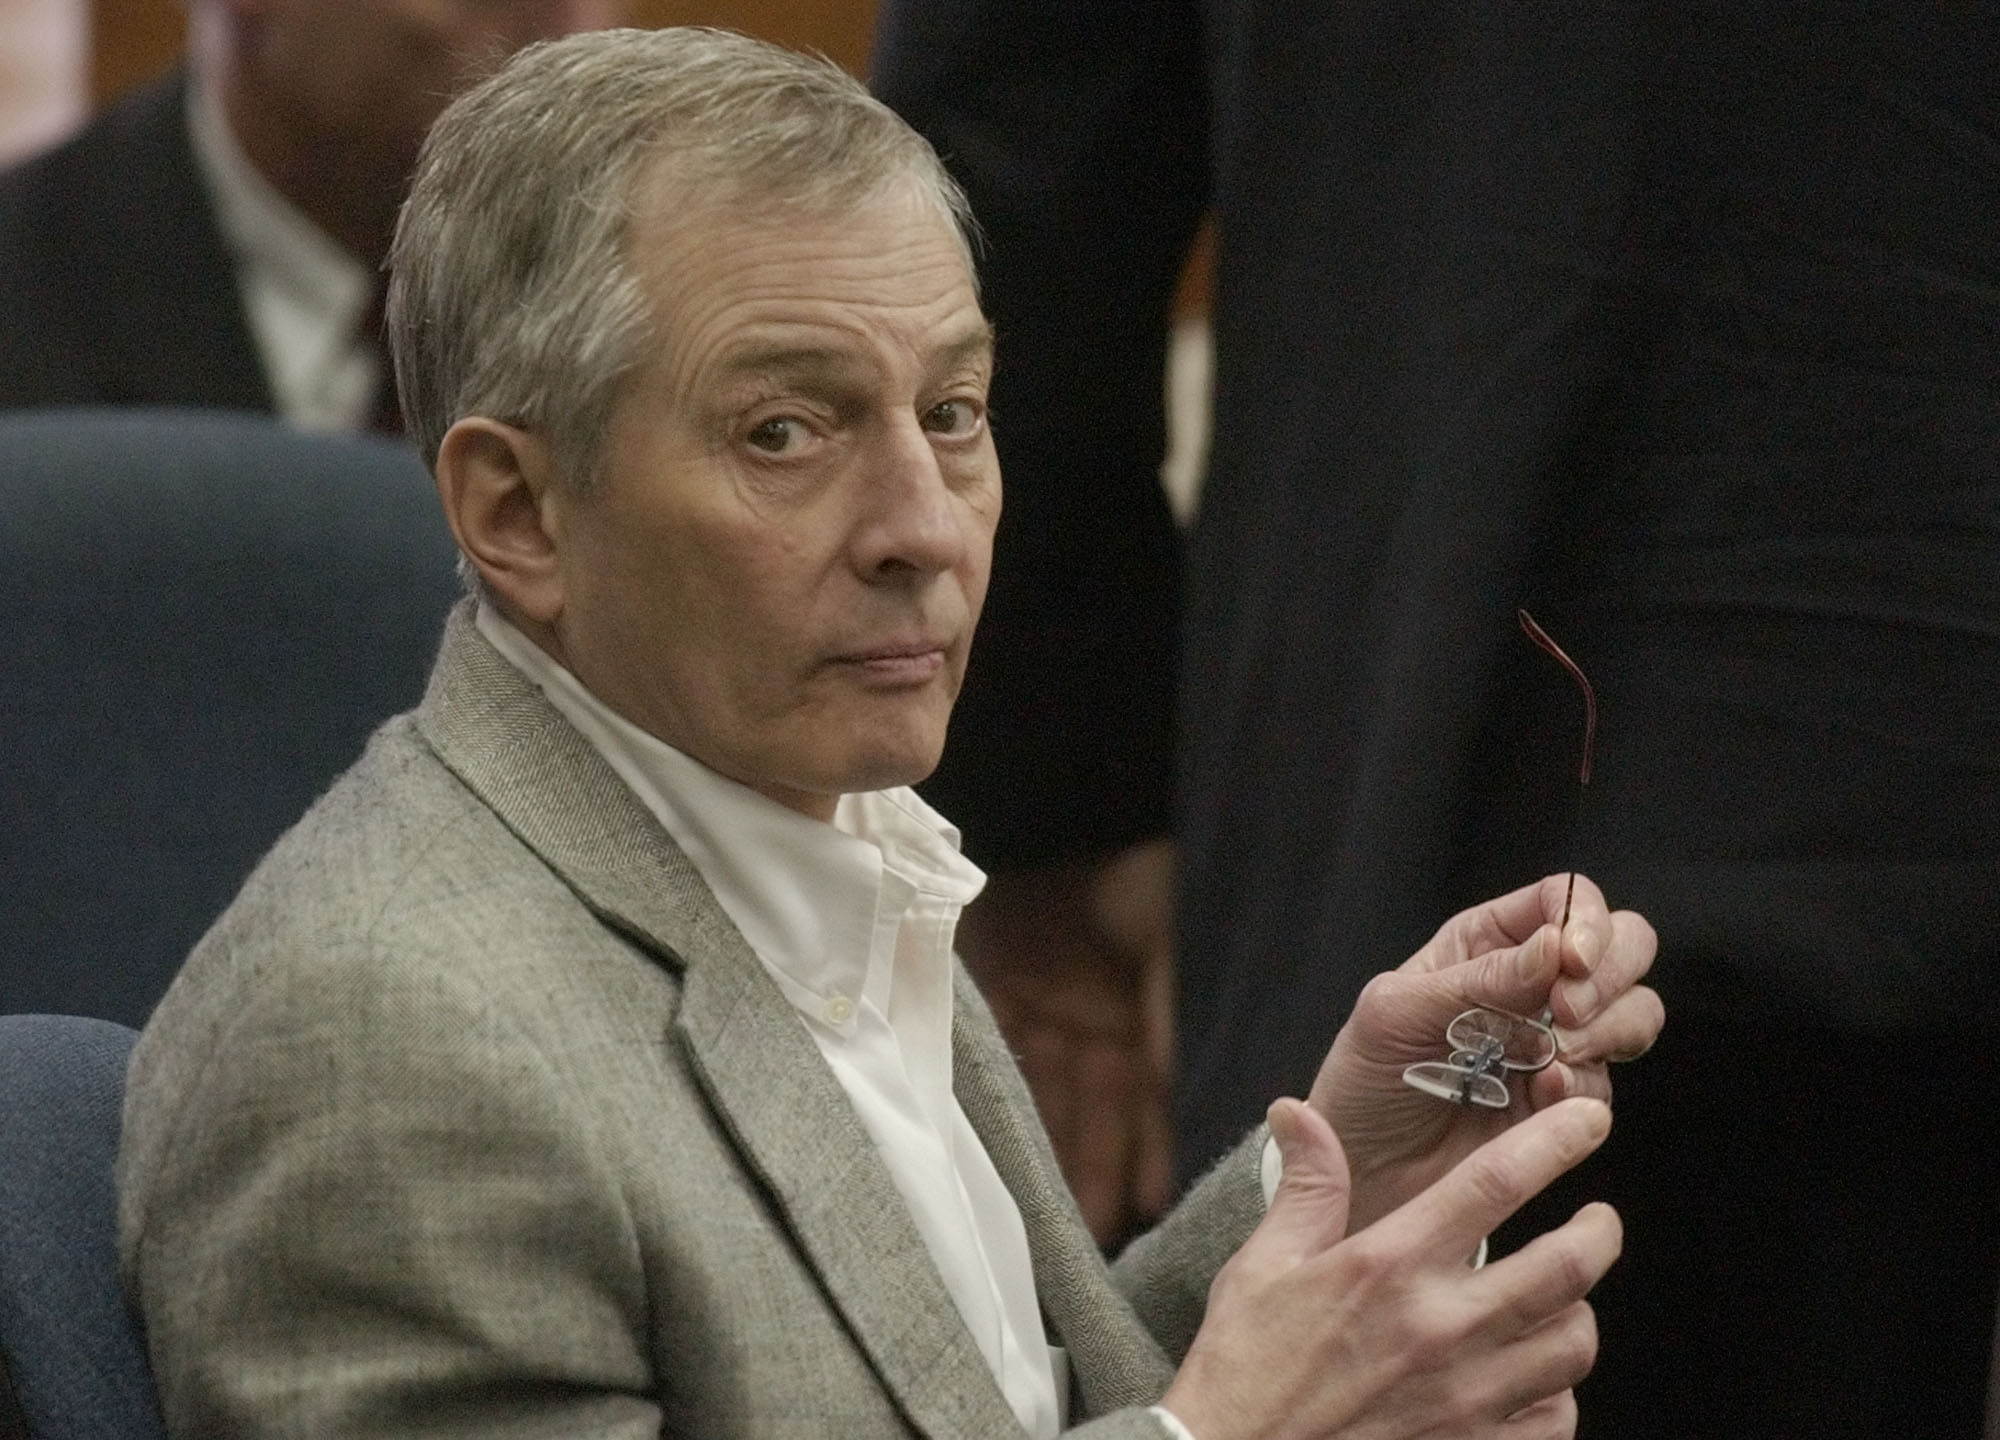 Robert Dursts recorded confession is inadmissible